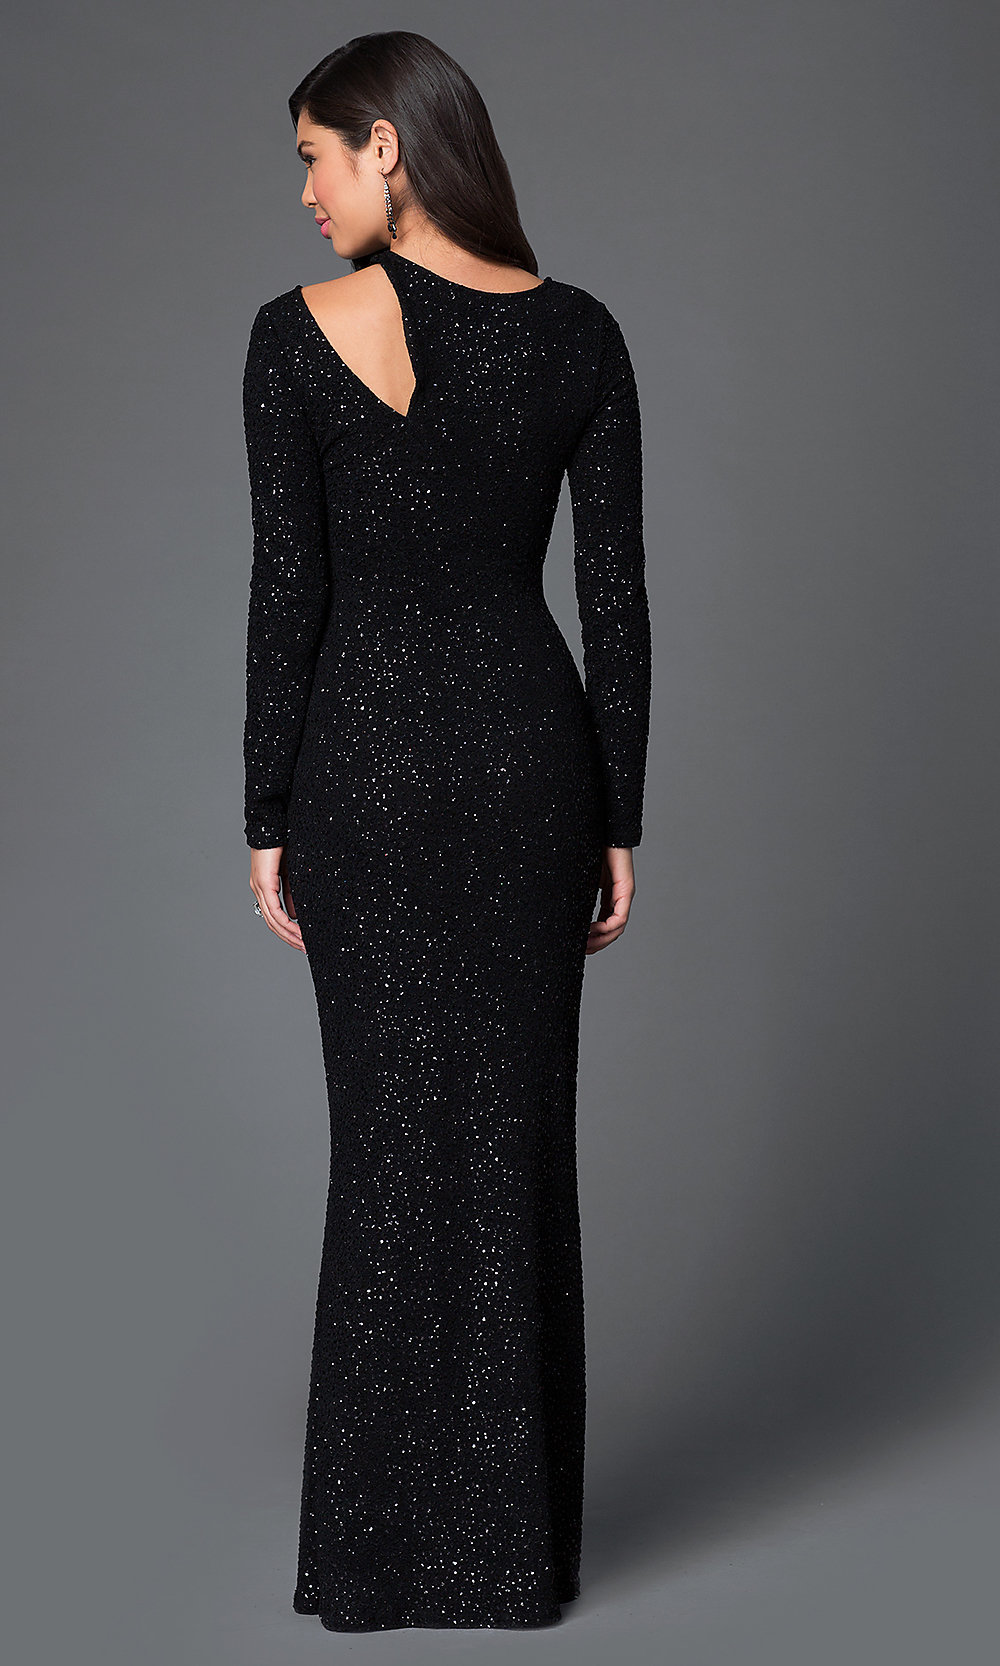 Hover To Zoom · Image Of Glittery Black Floor Length Long Sleeve Neckline  Detail Dress Style: MD D14211WWo